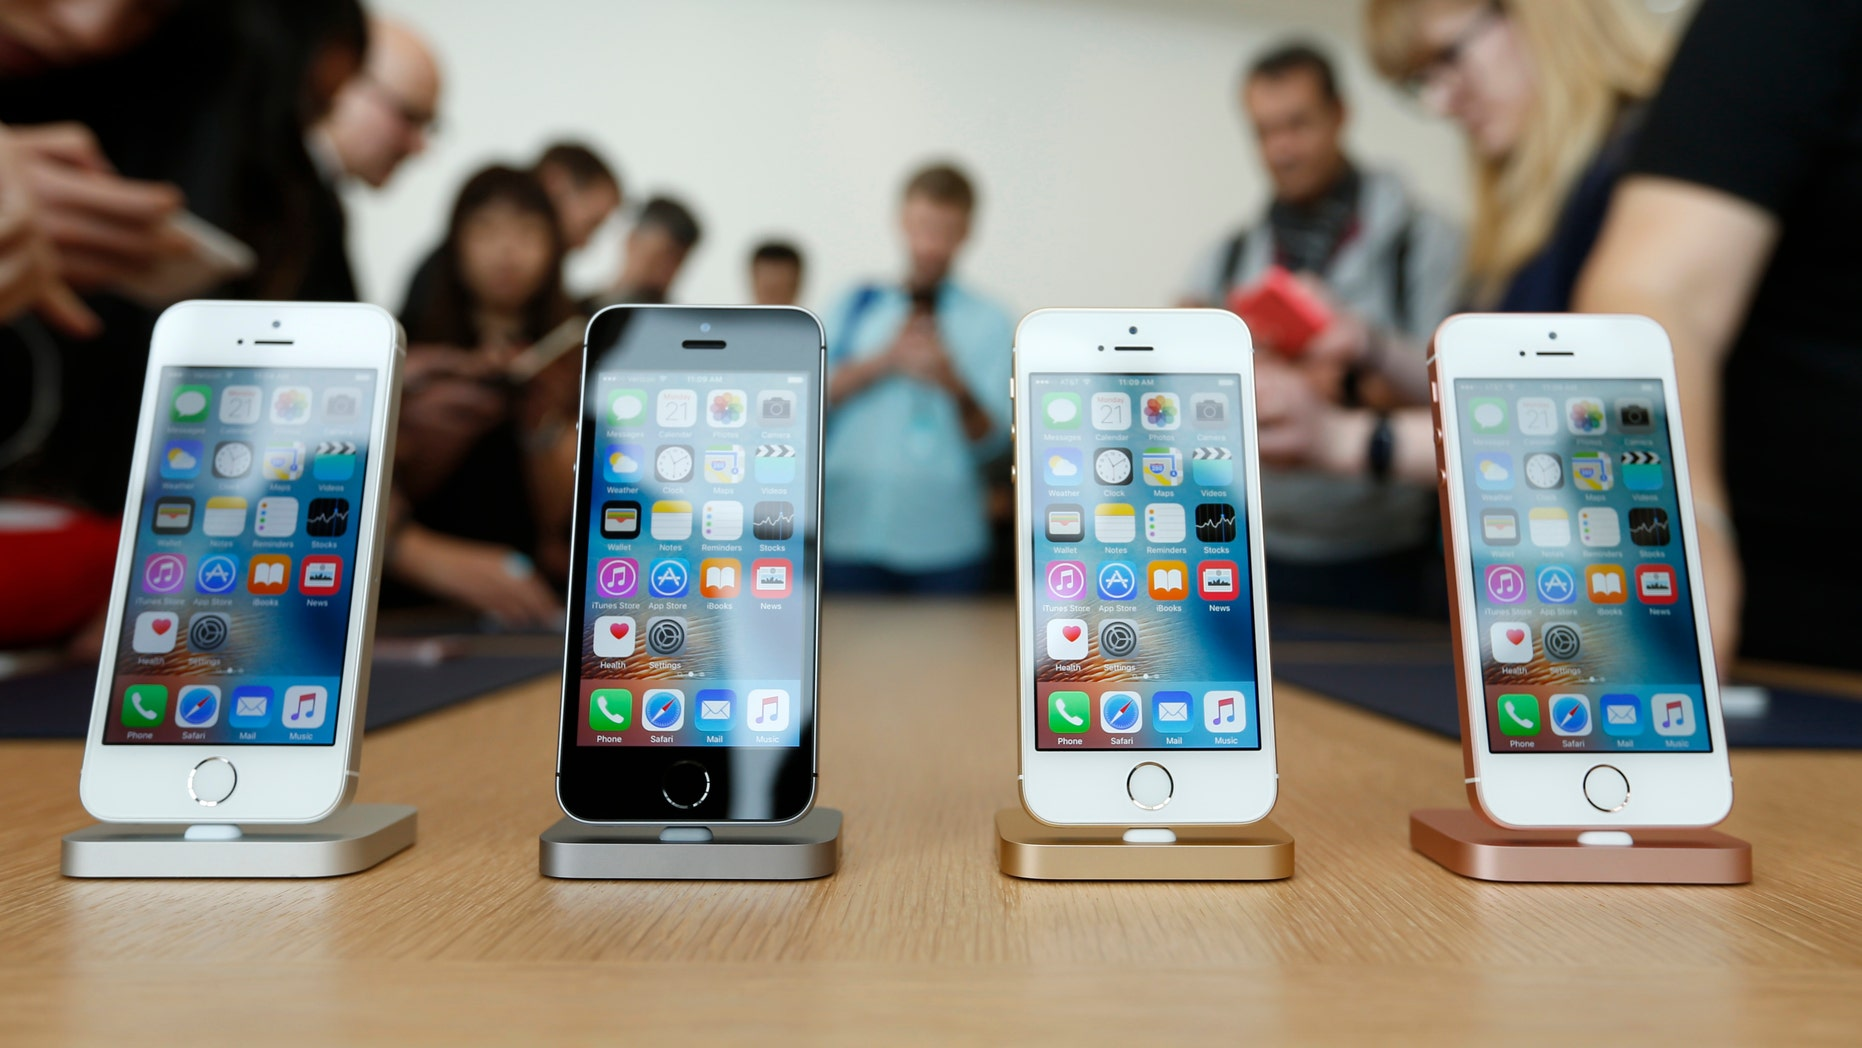 The new iPhone SE on display during an event at the Apple headquarters in Cupertino, California March 21, 2016. (REUTERS/Stephen Lam)